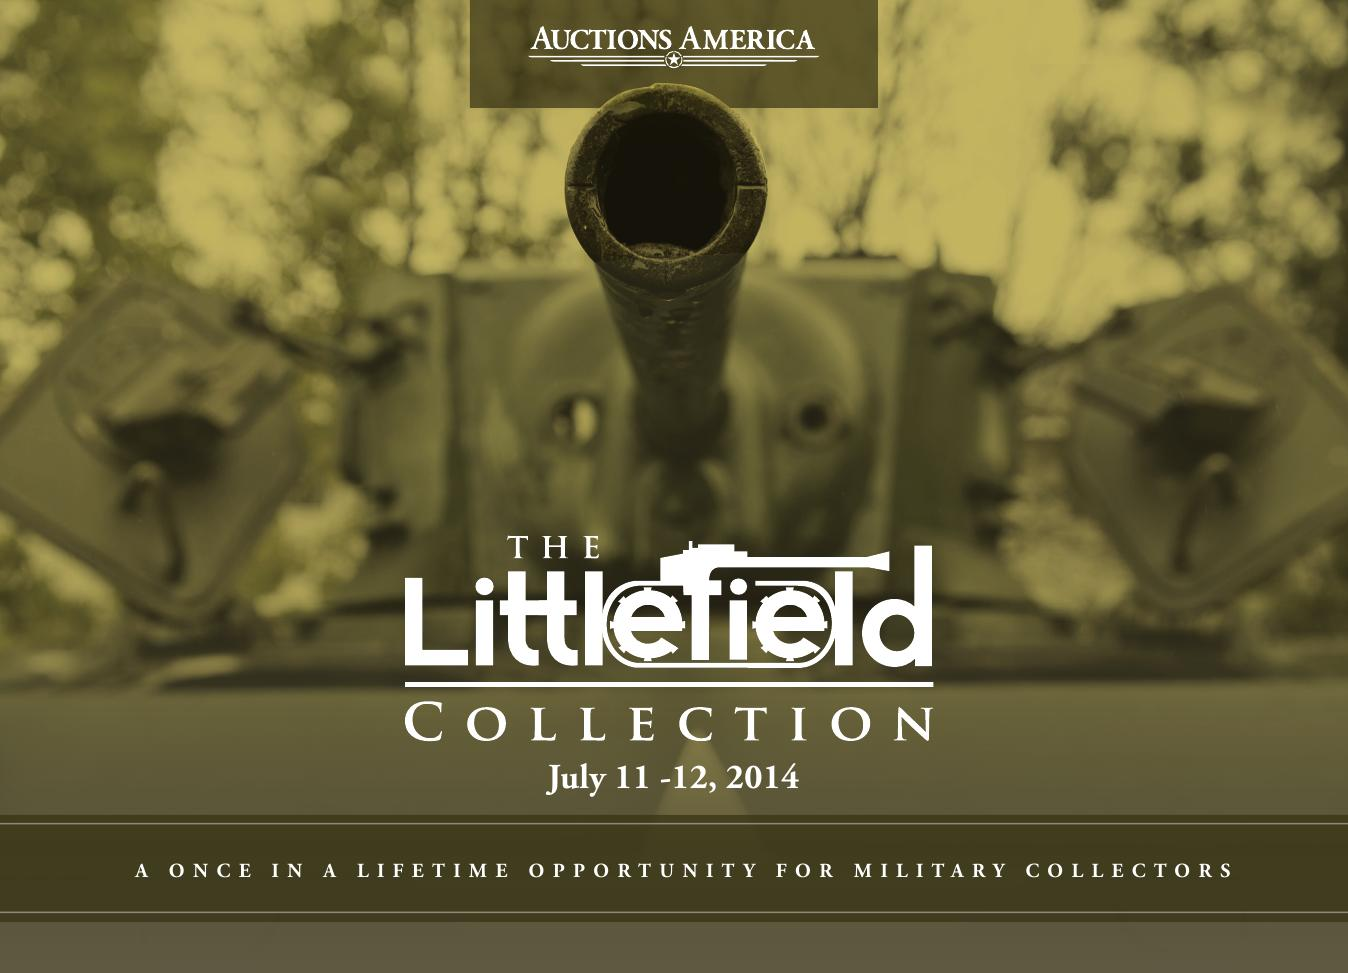 The Littlefield Collection